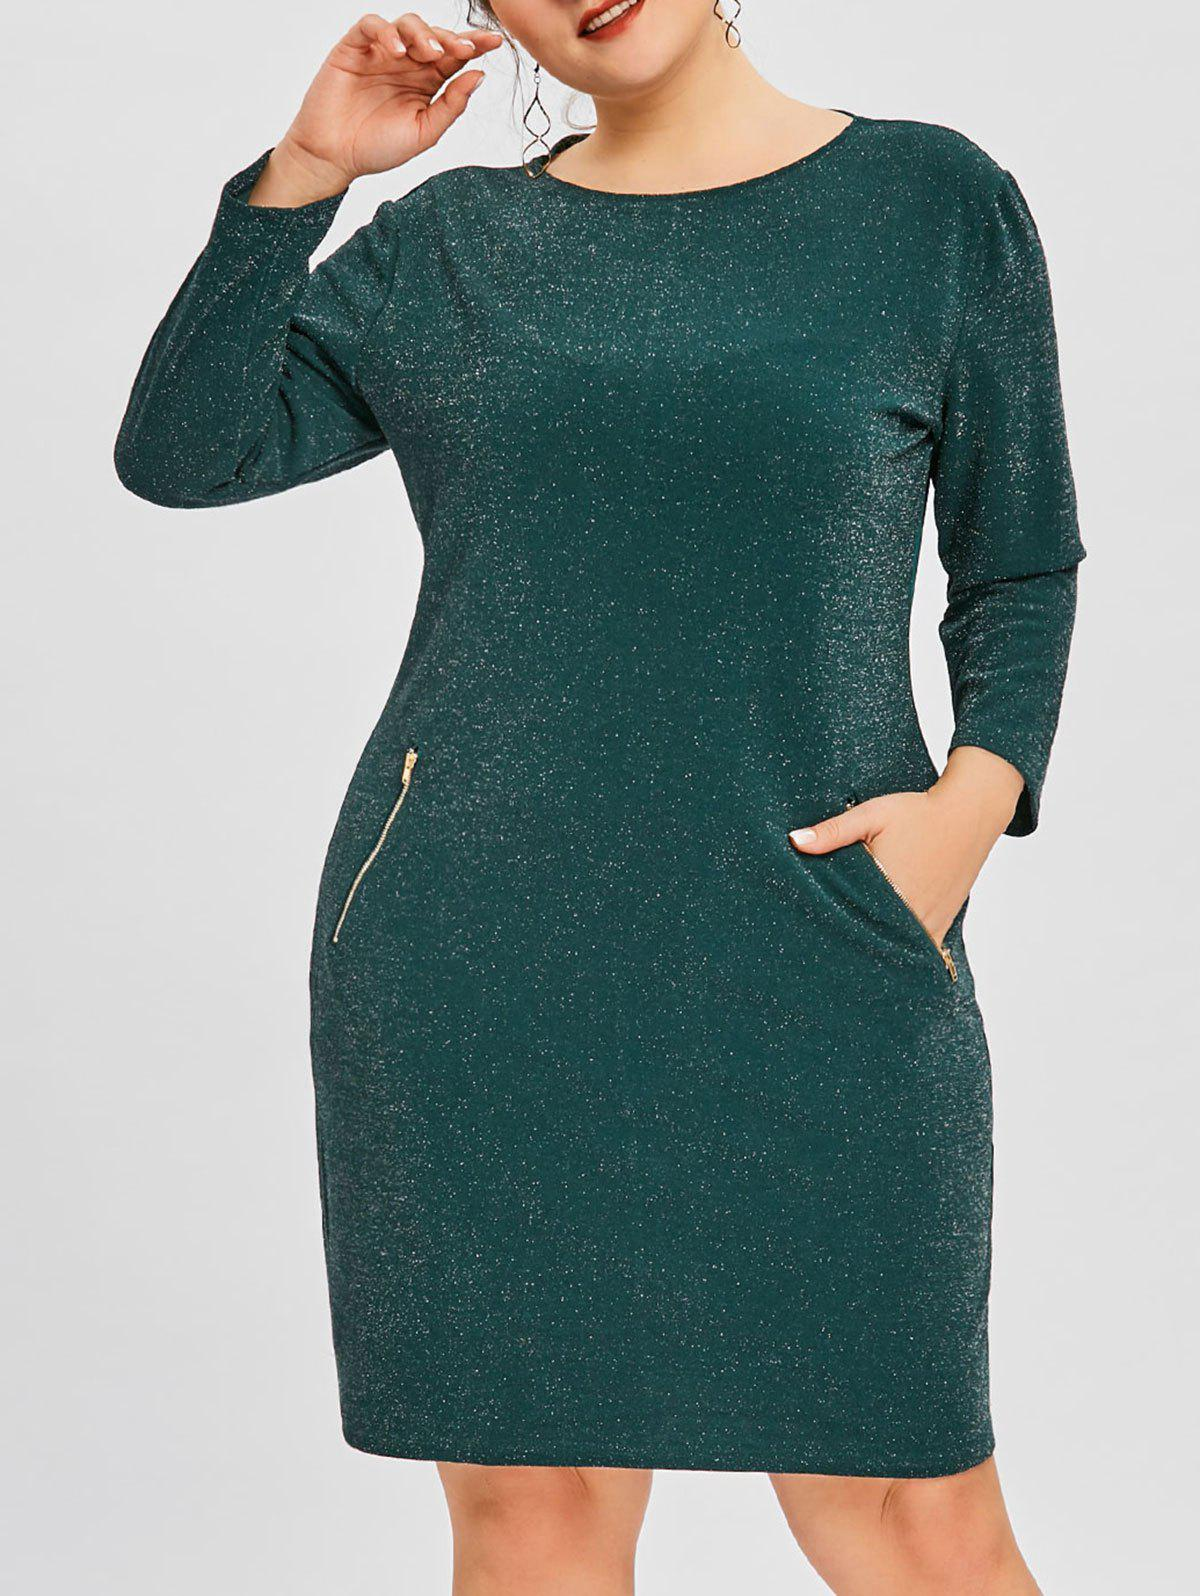 Store Glitter Plus Size Zipper Pockets Dress